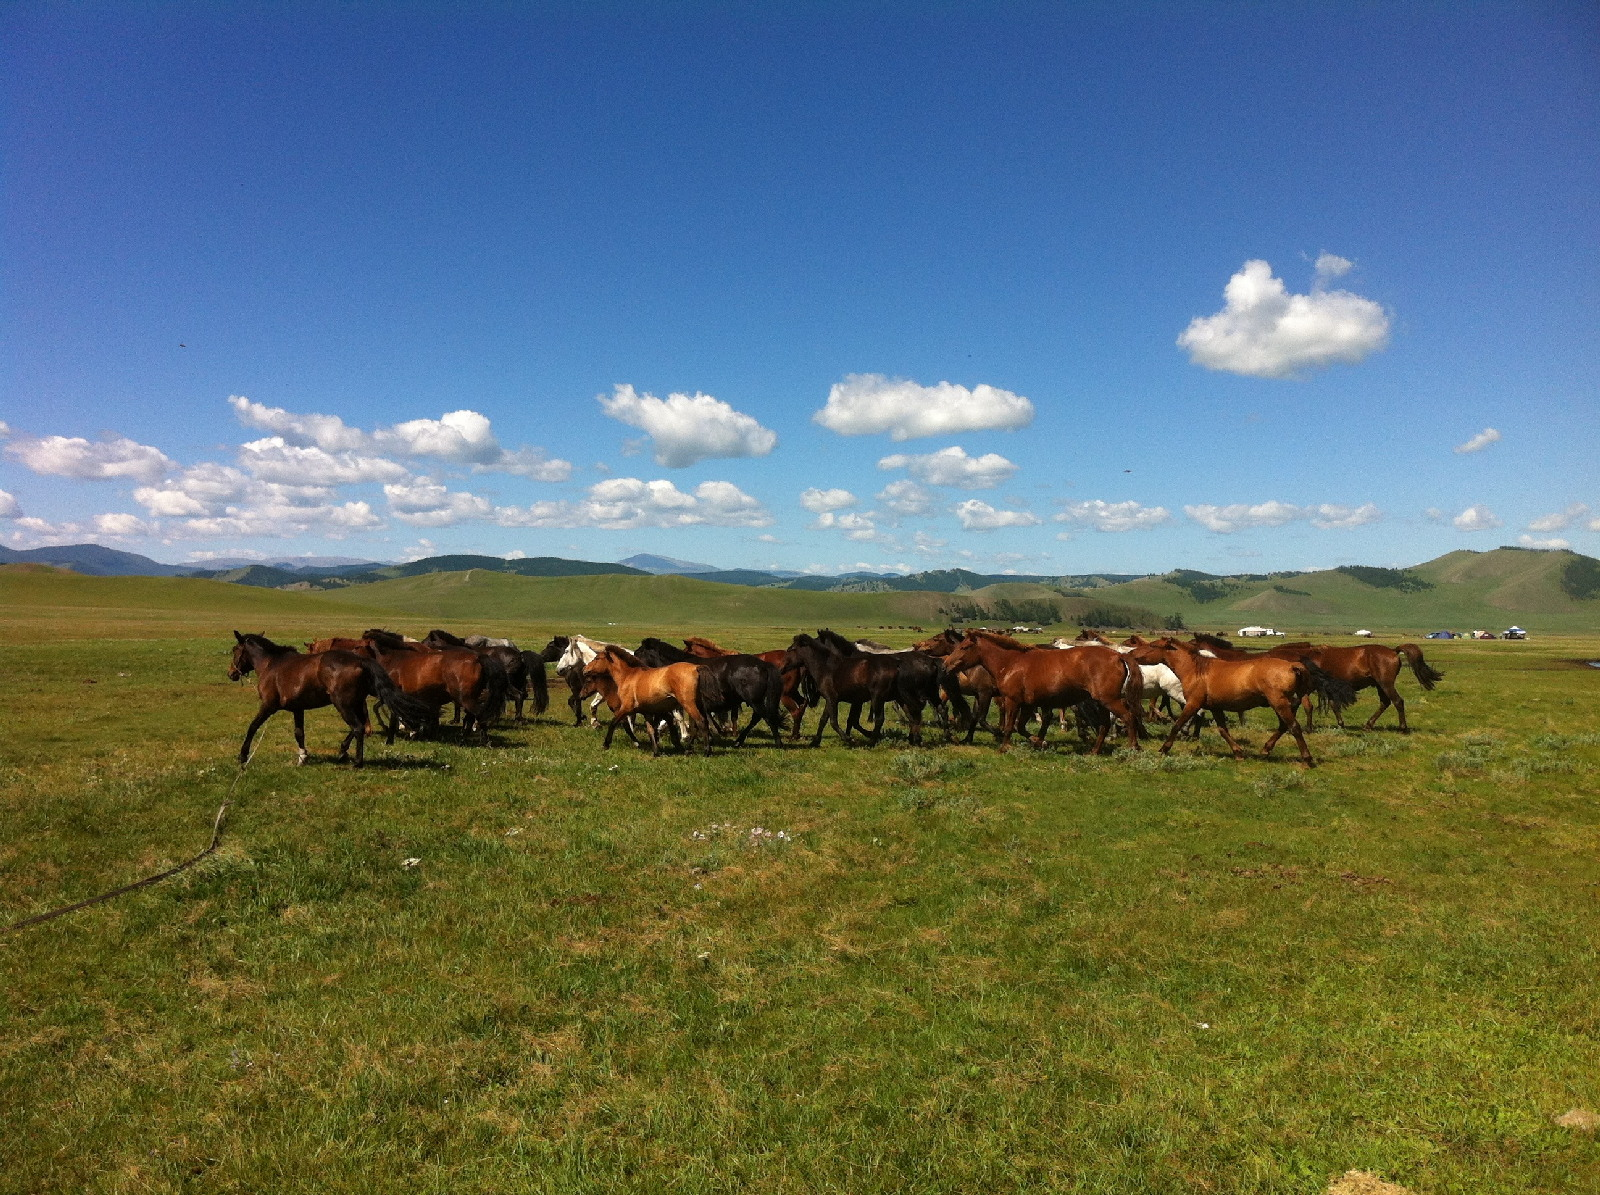 MONGOLIA—LAND OF FREEDOM